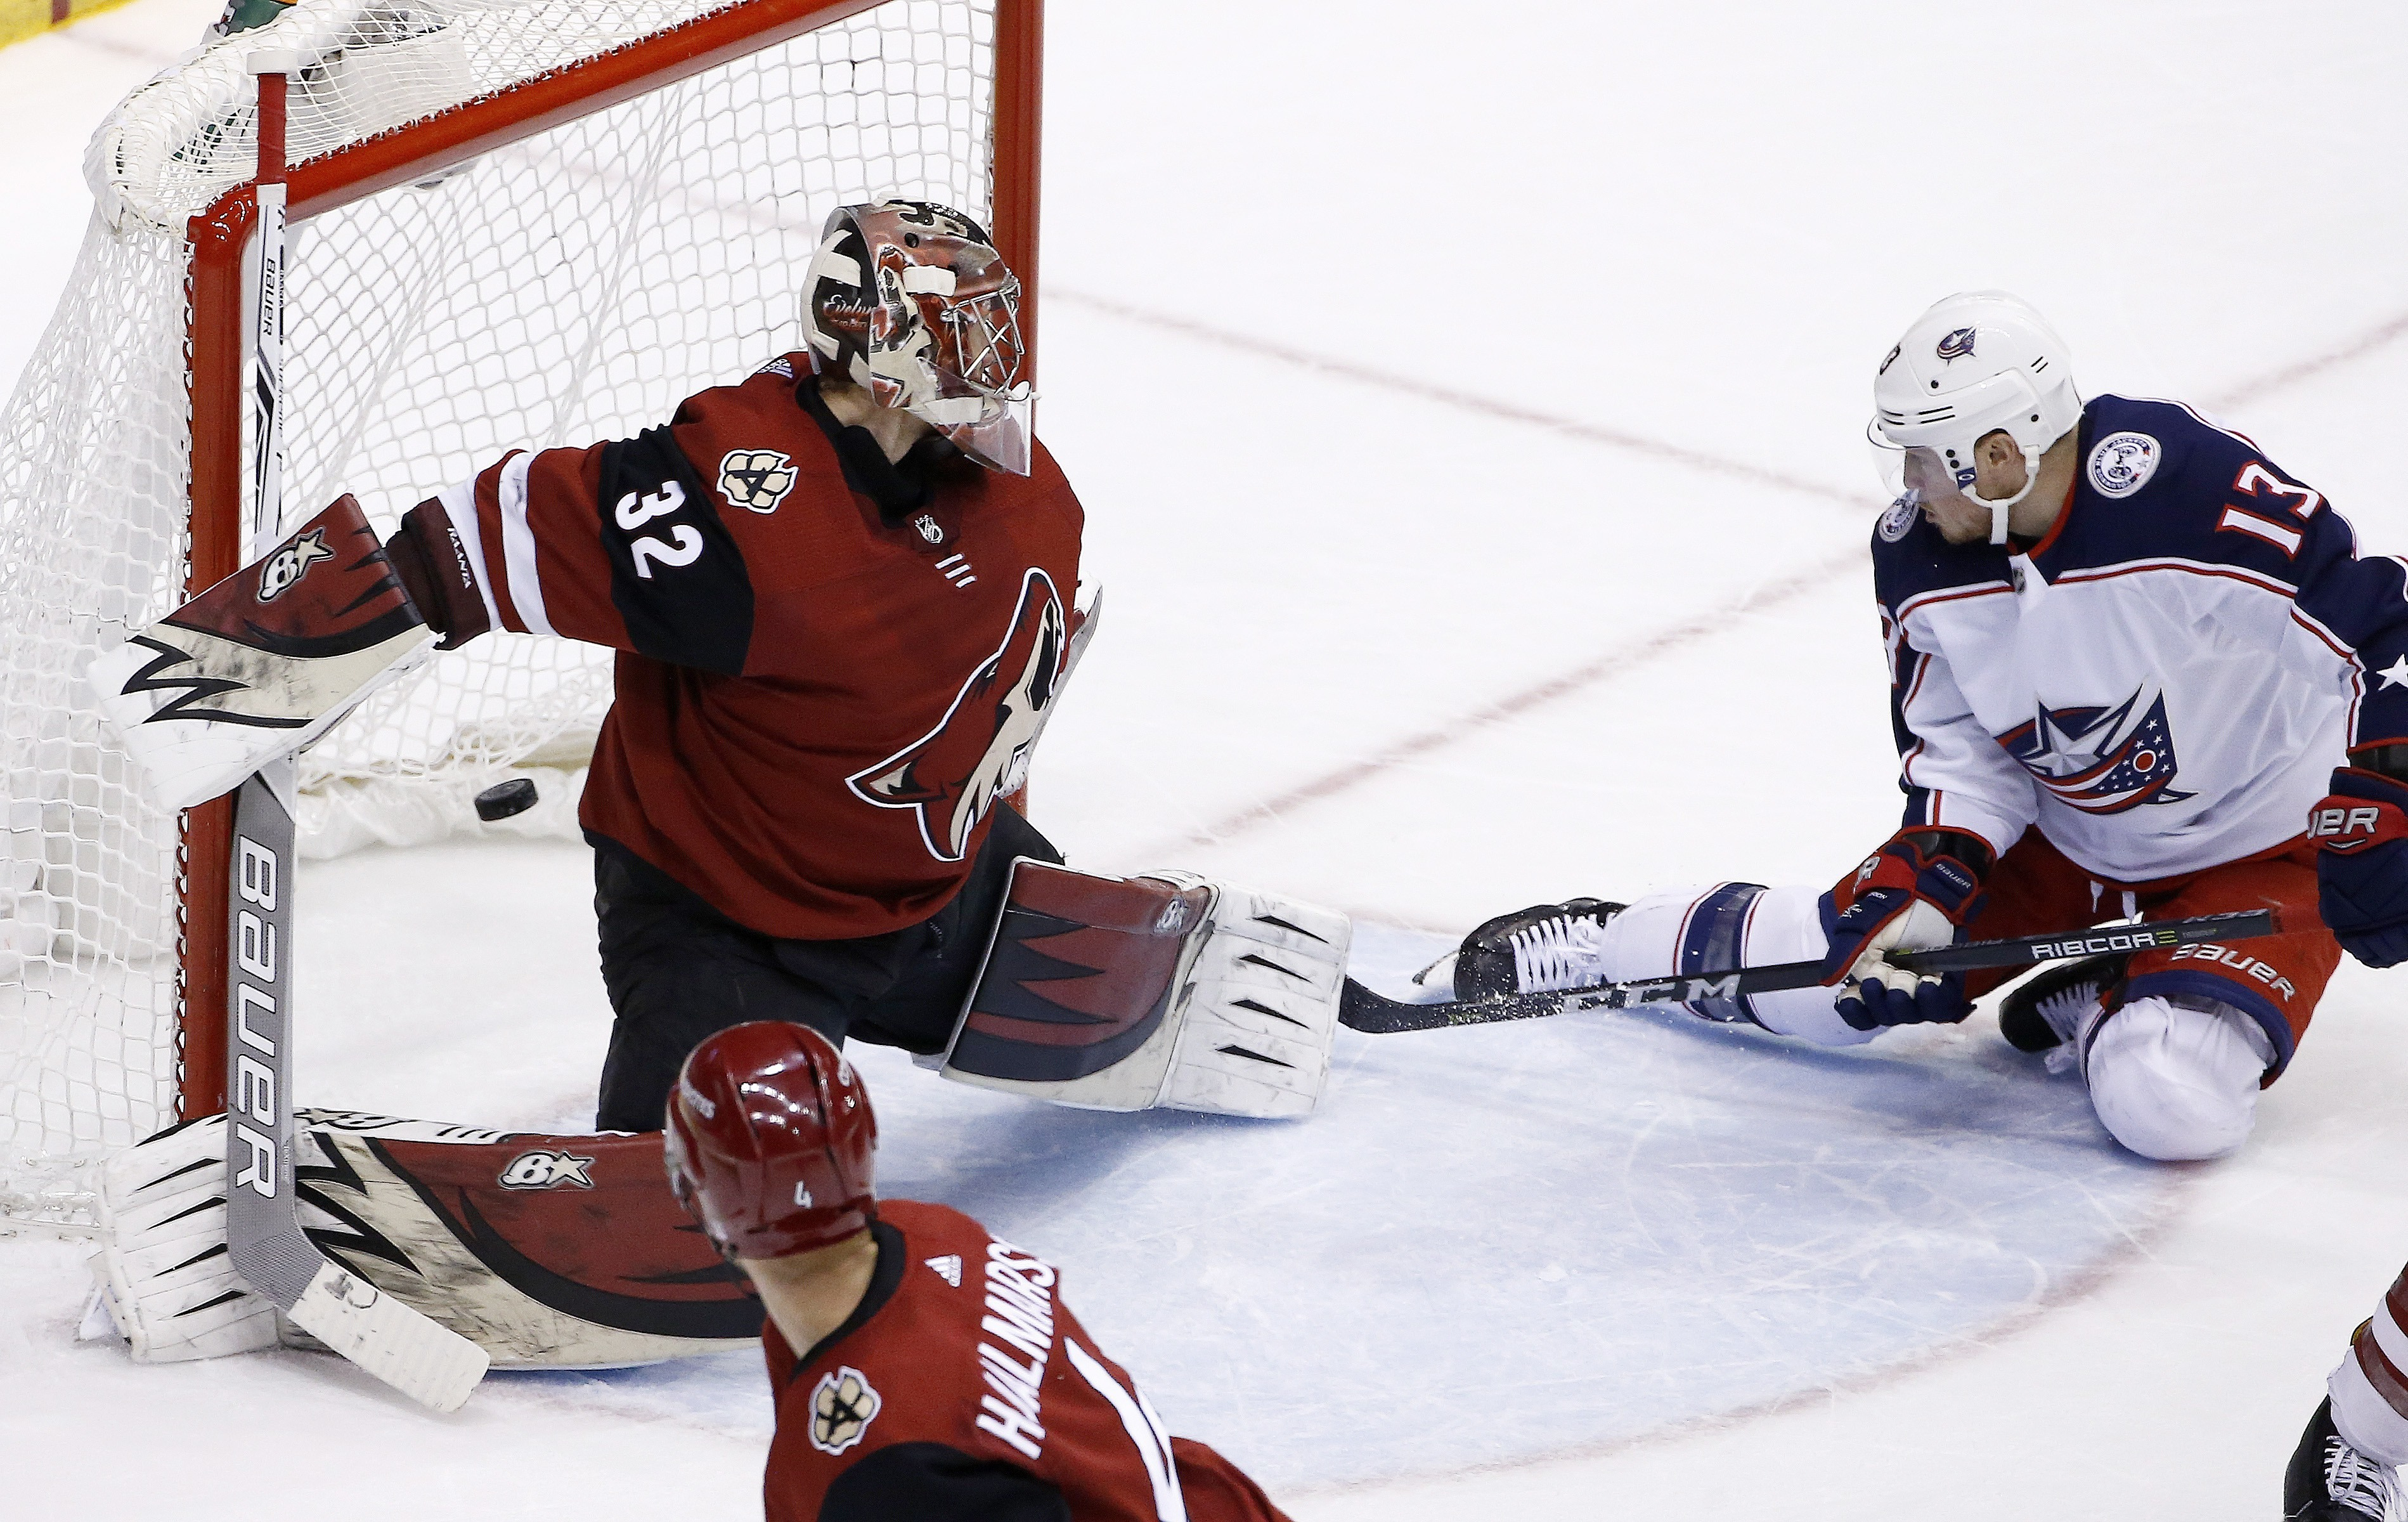 Columbus Blue Jackets right wing Cam Atkinson (13) scores against Arizona Coyotes goaltender Antti Raanta (32) during the third period of an NHL hockey game Thursday, Jan. 25, 2018, in Glendale, Ariz. The Blue Jackets won 2-1. (AP Photo/Ross D. Franklin)